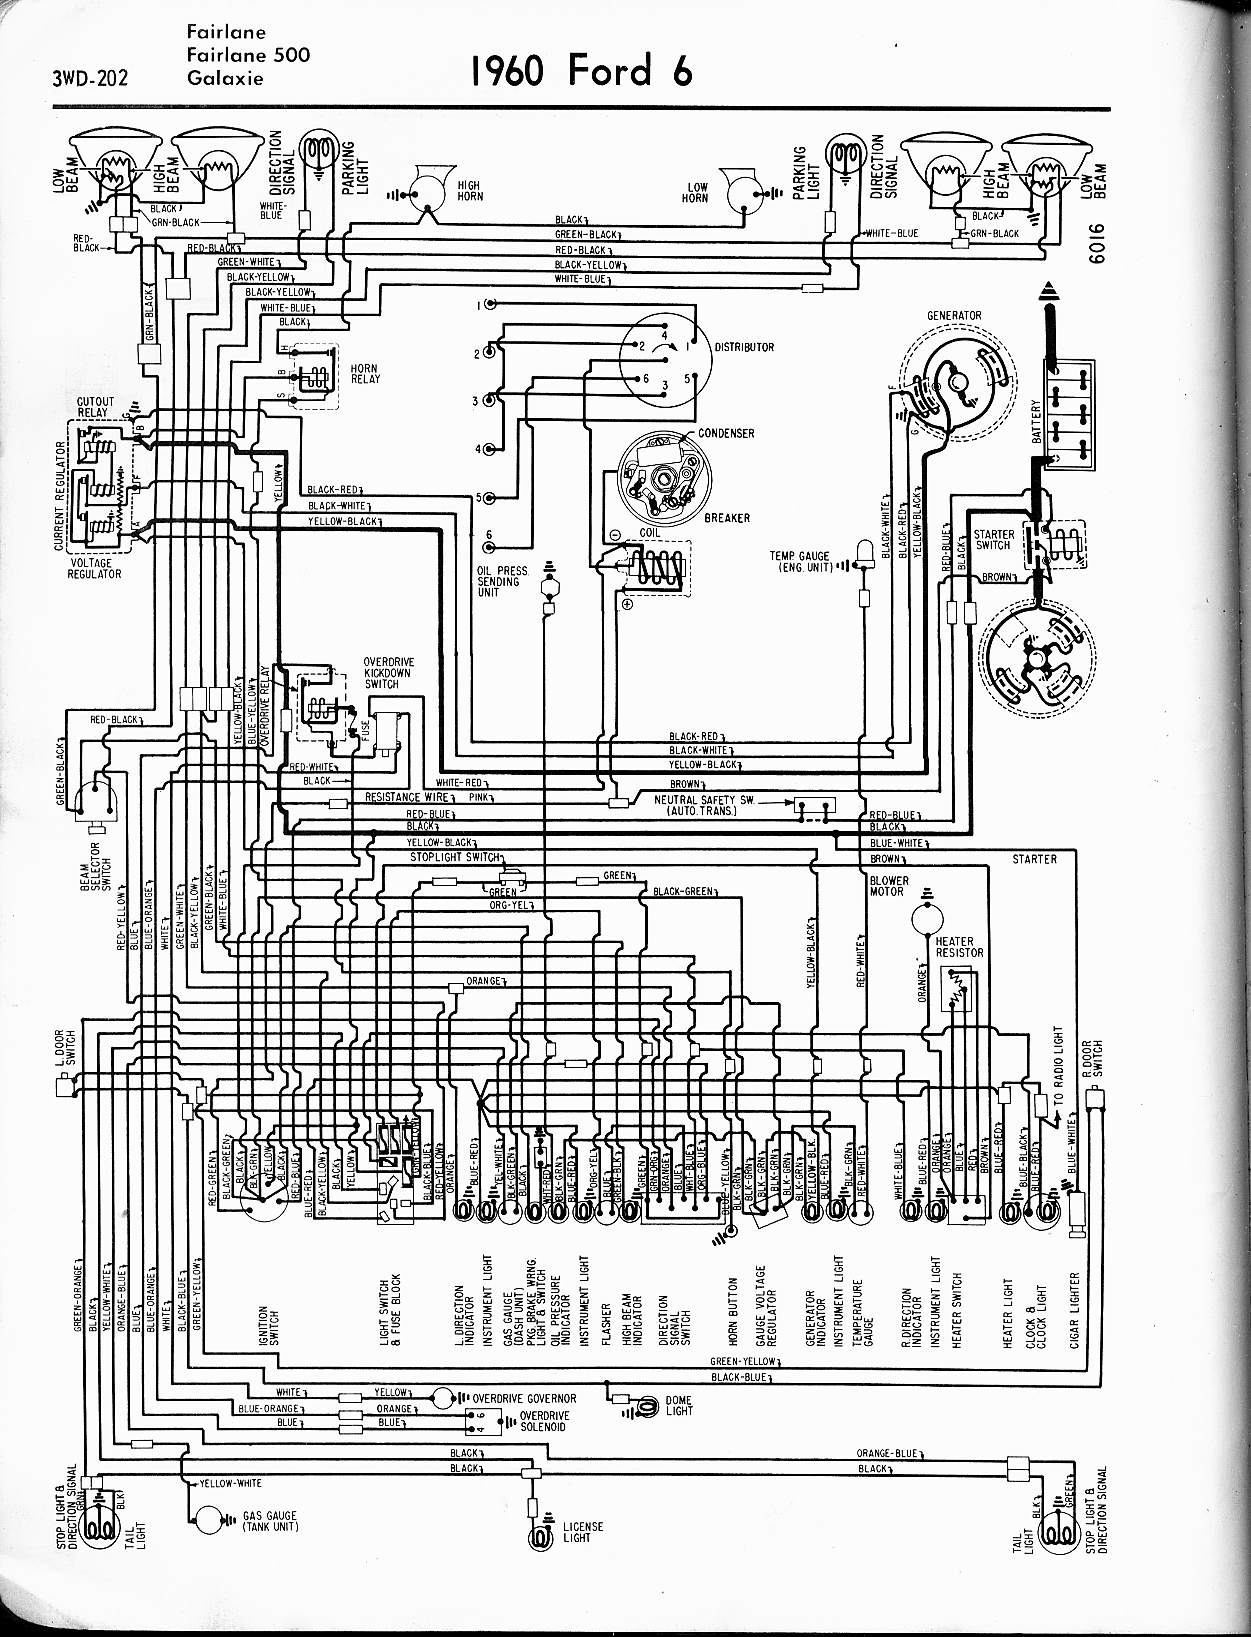 57 65 Ford Wiring Diagrams Home Free 1960 6 Cyl Fairlane 500 Galaxie